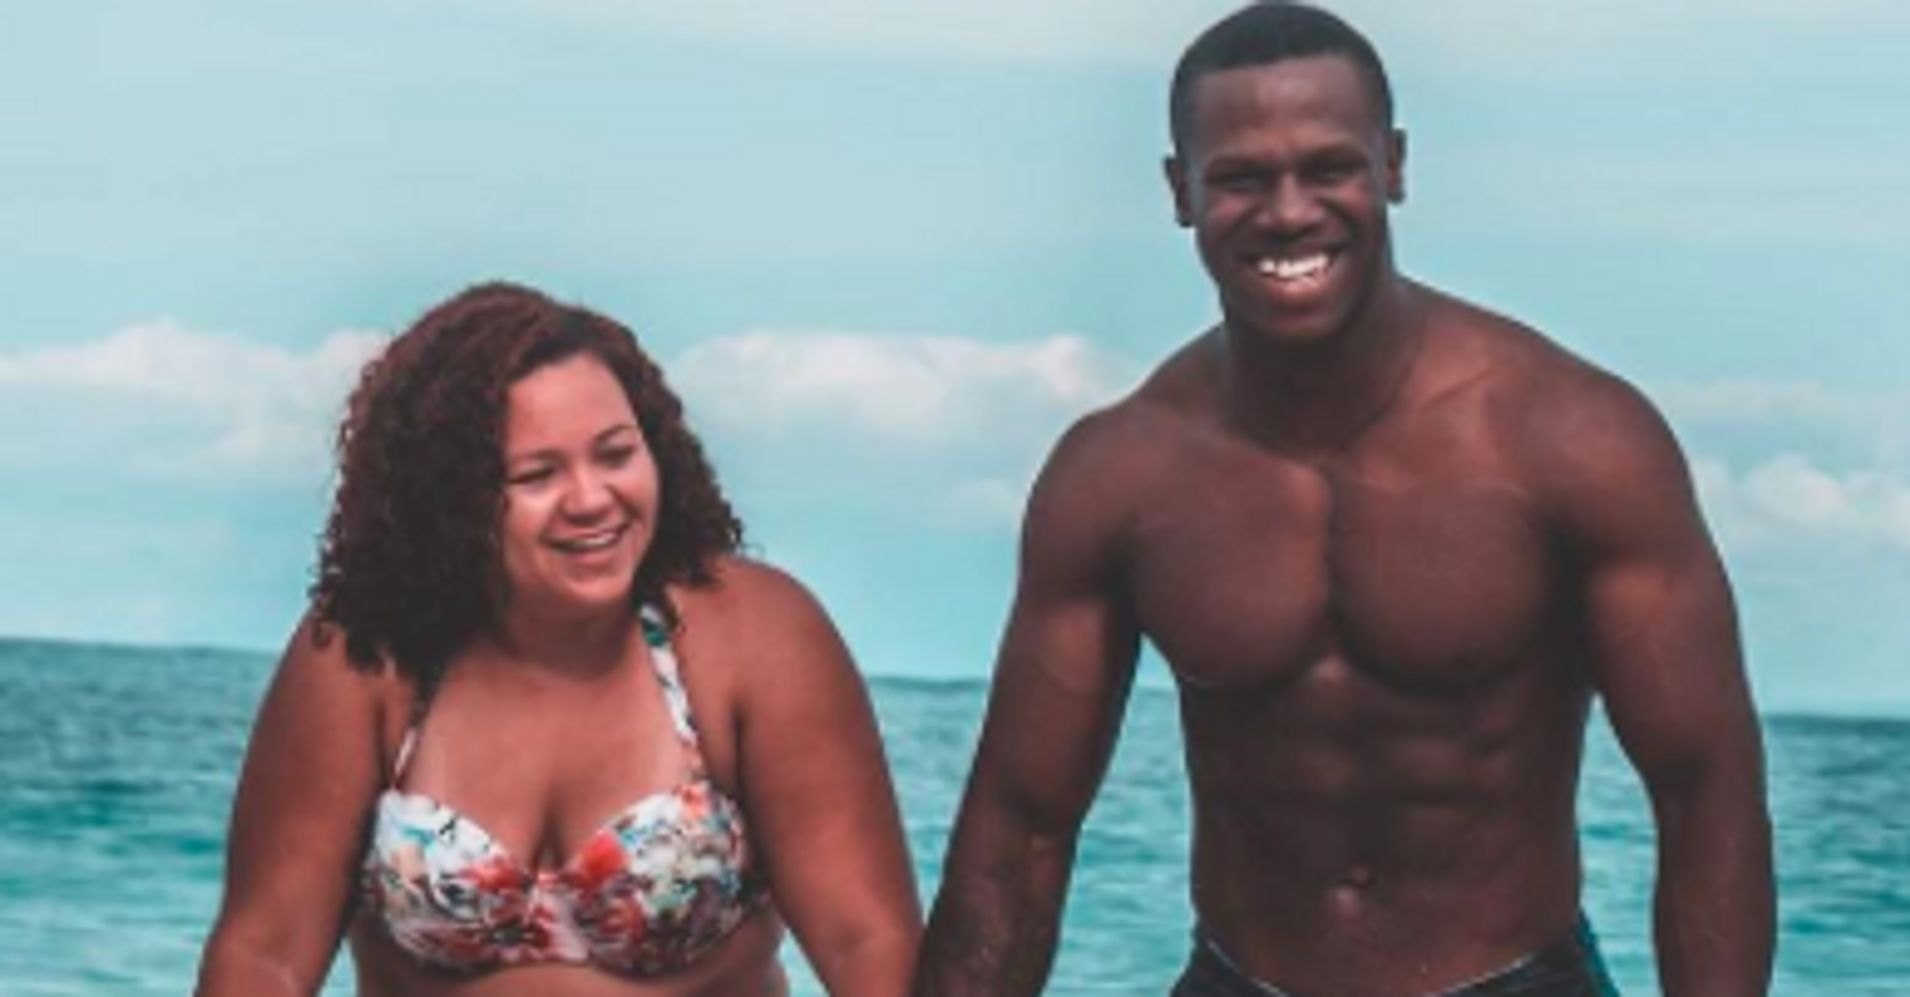 Couples Bathing Suit Photo Is Going Viral For An -2116